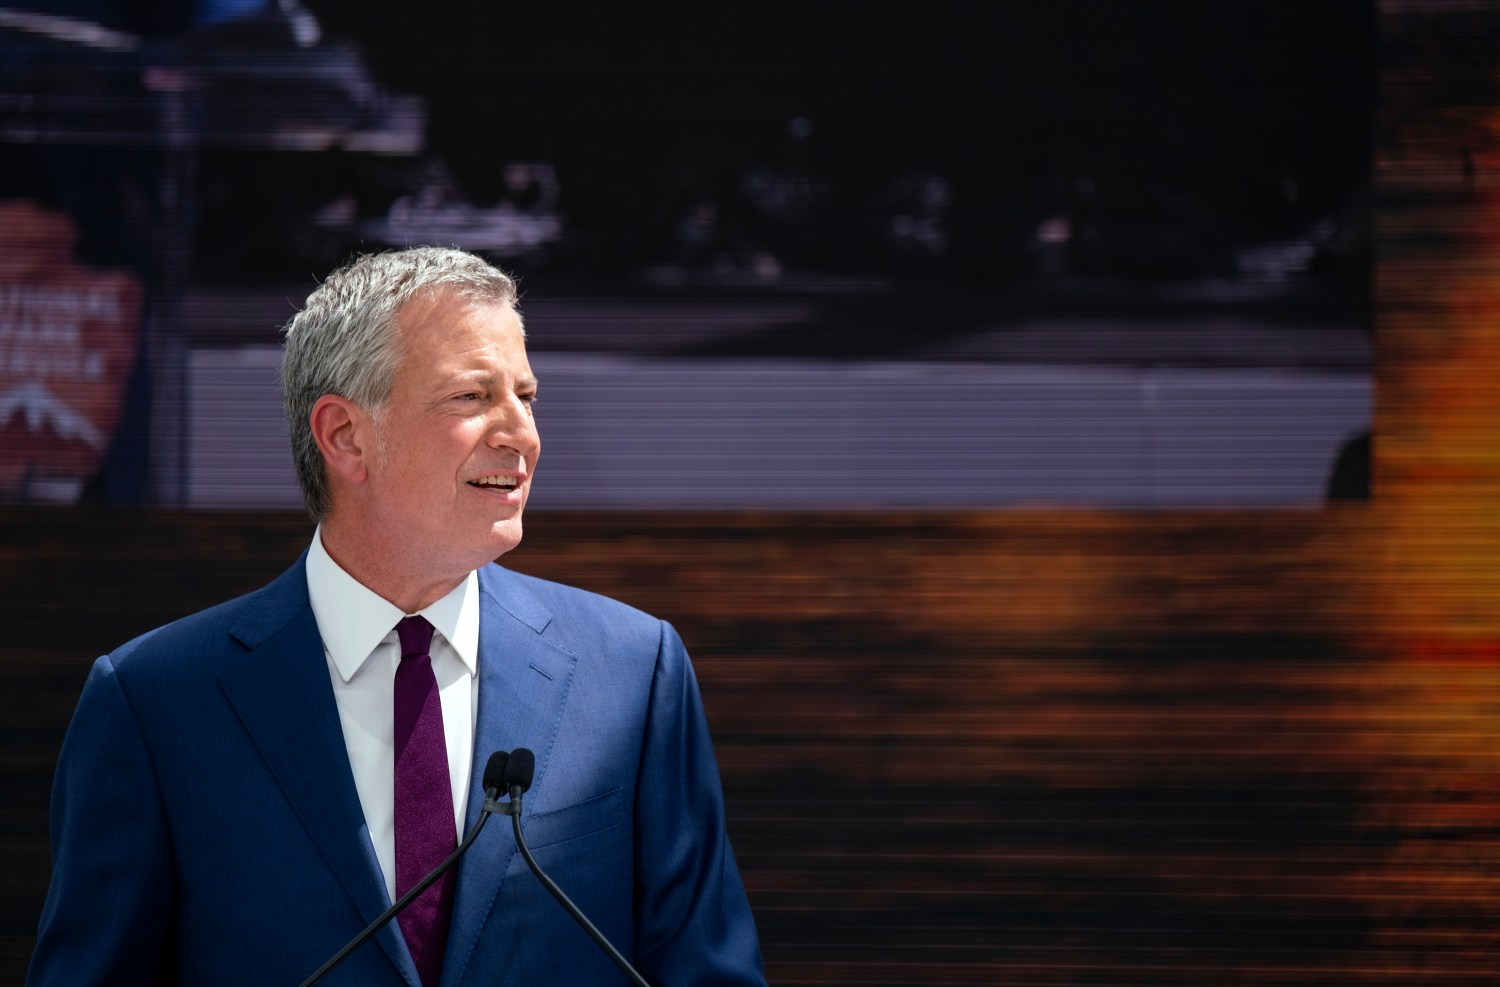 How a 17-year-old high school junior from St. Louis scooped Bill de Blasio's presidential announcement, plus Gannett's takeover battle